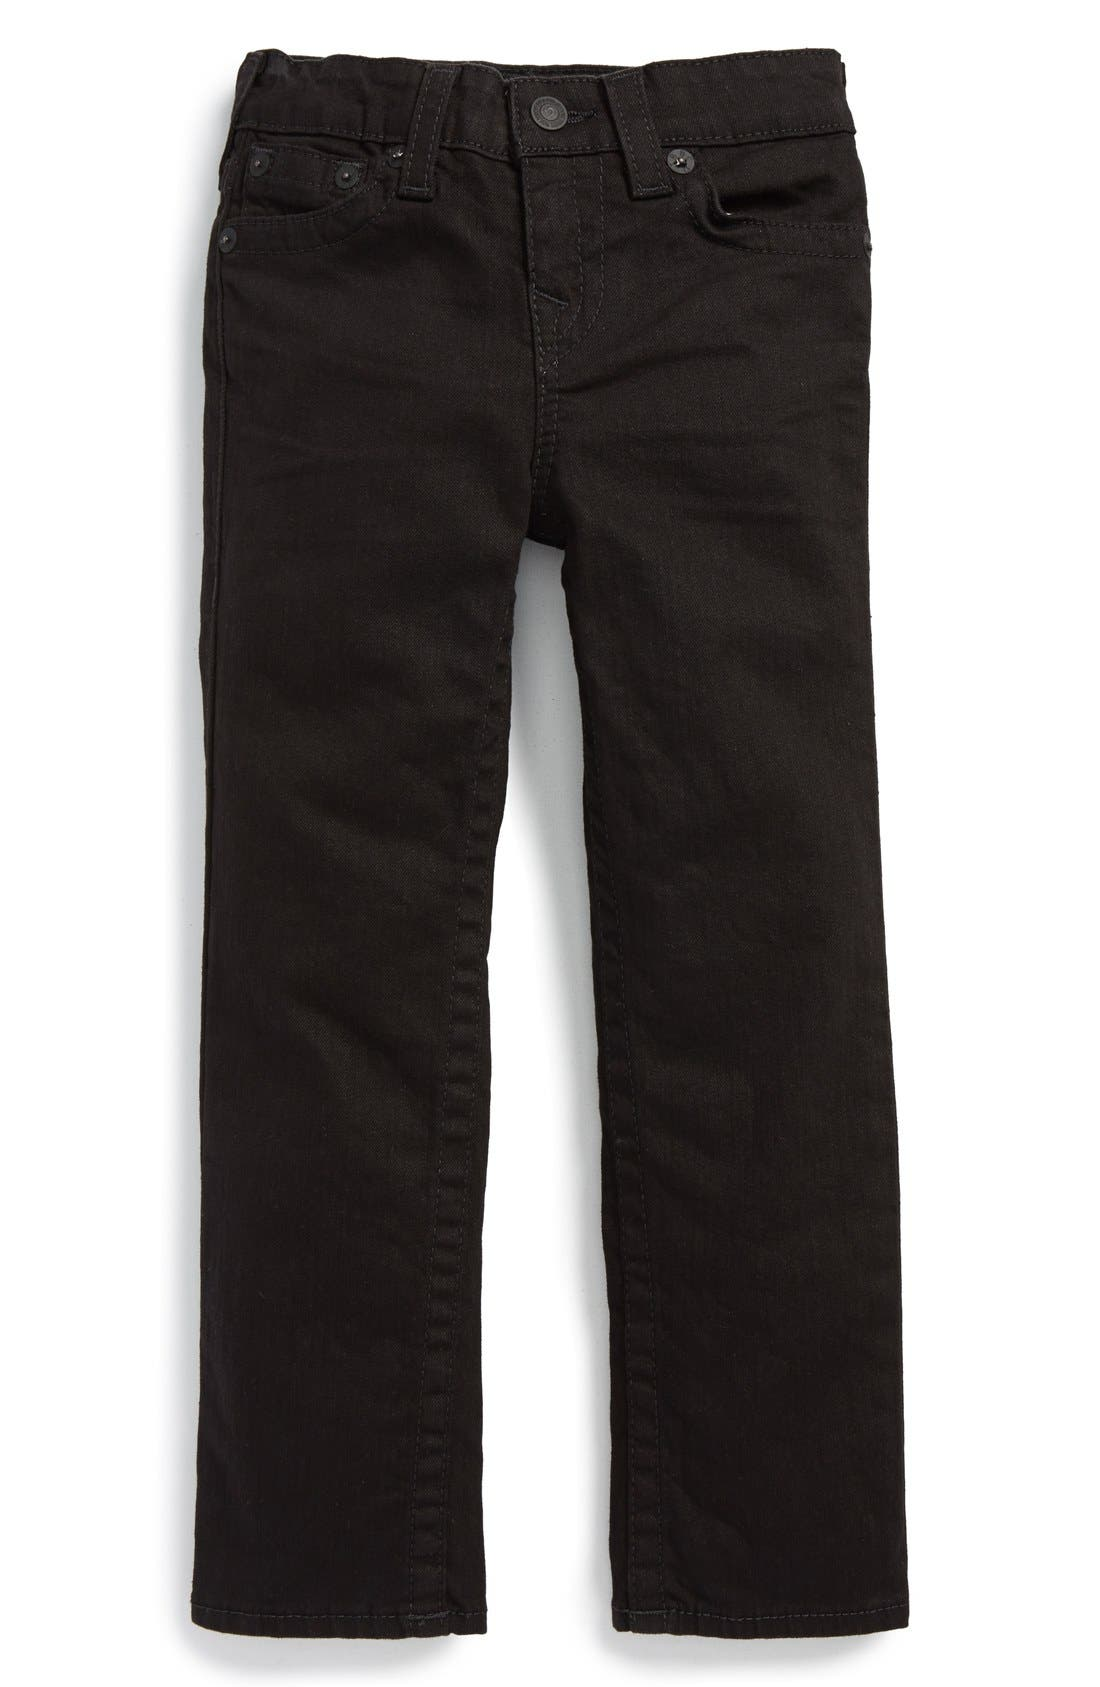 Main Image - True Religion Brand Jeans 'Geno' Relaxed Slim Fit Jeans (Toddler Boys & Little Boys)